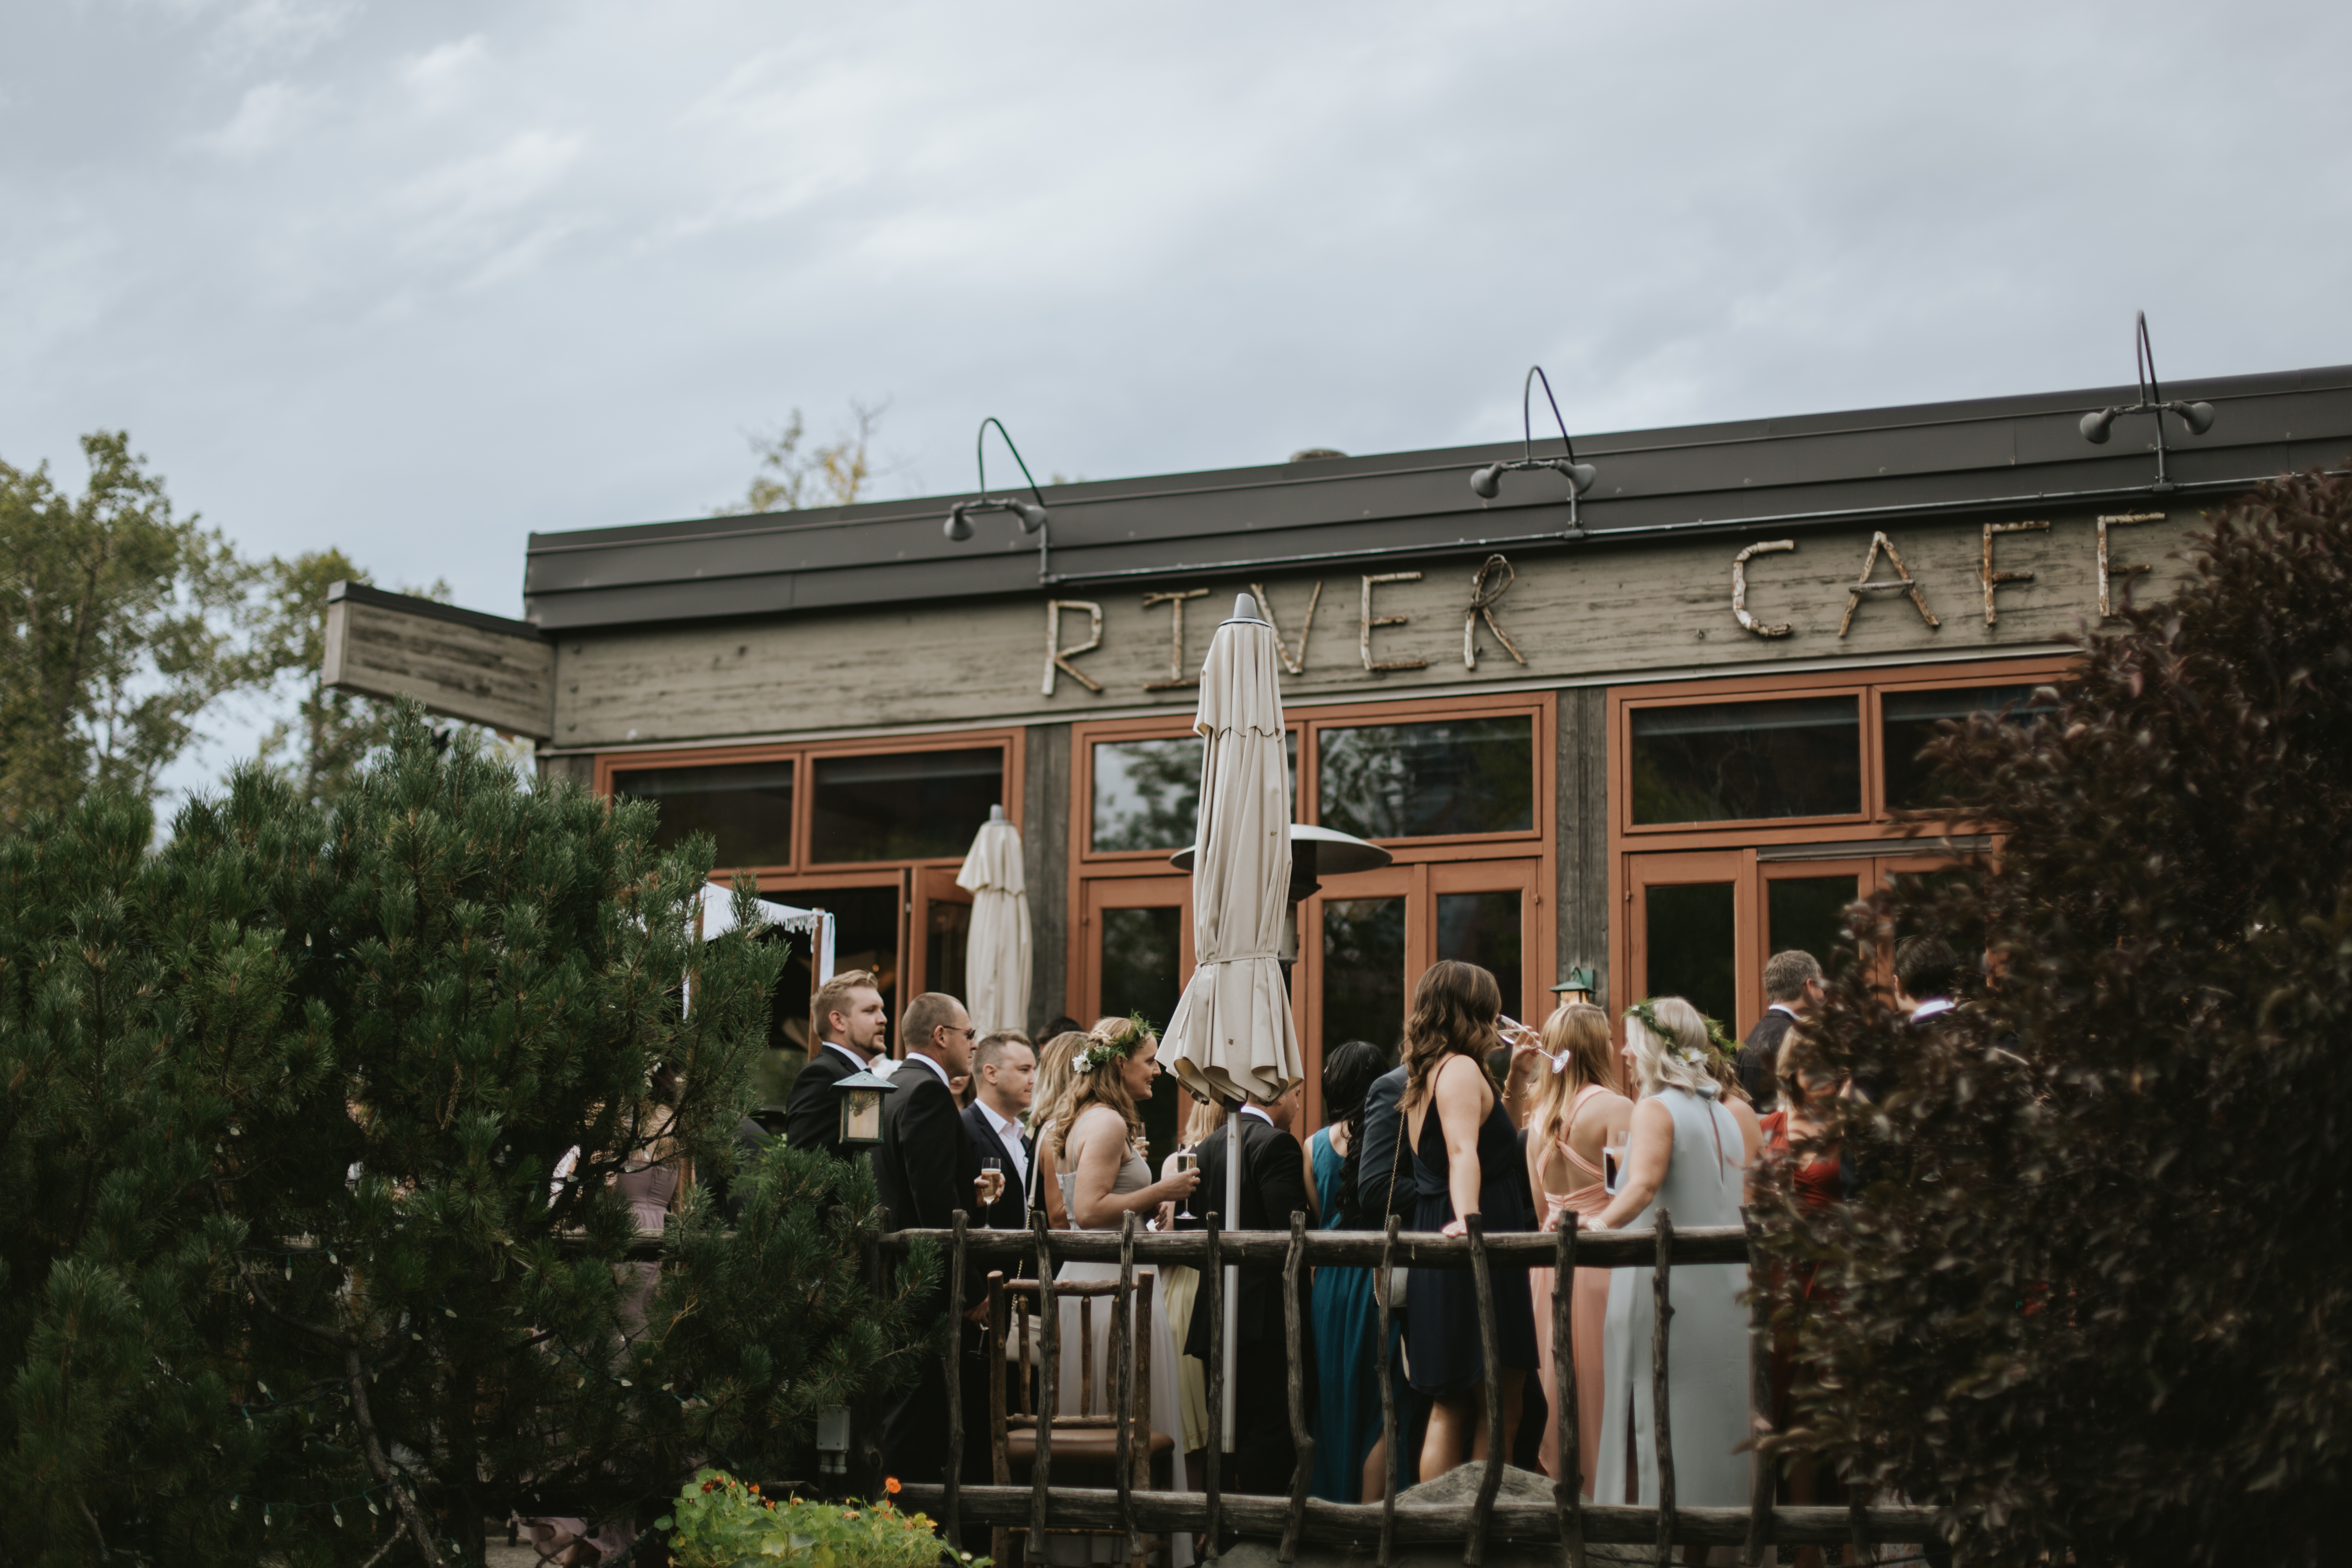 guests mingle on the river cafe patio